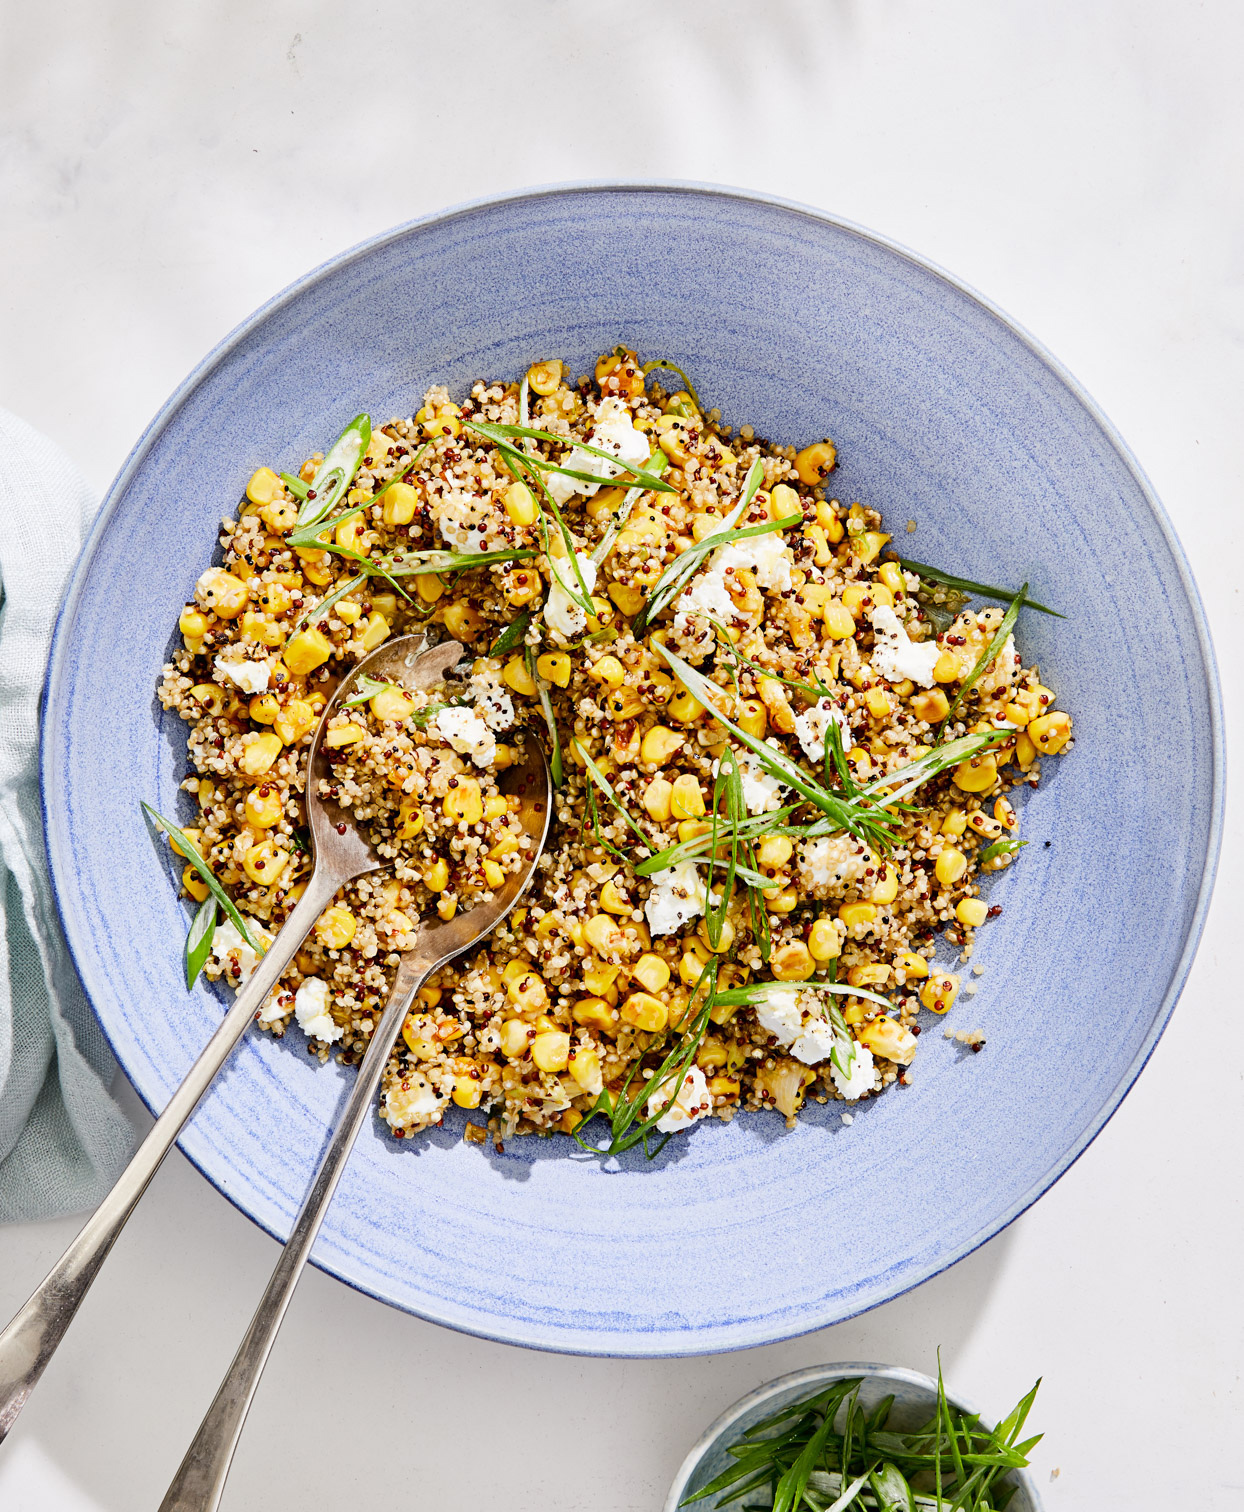 quinoa with caramelized corn and scallions served in a blue bowl